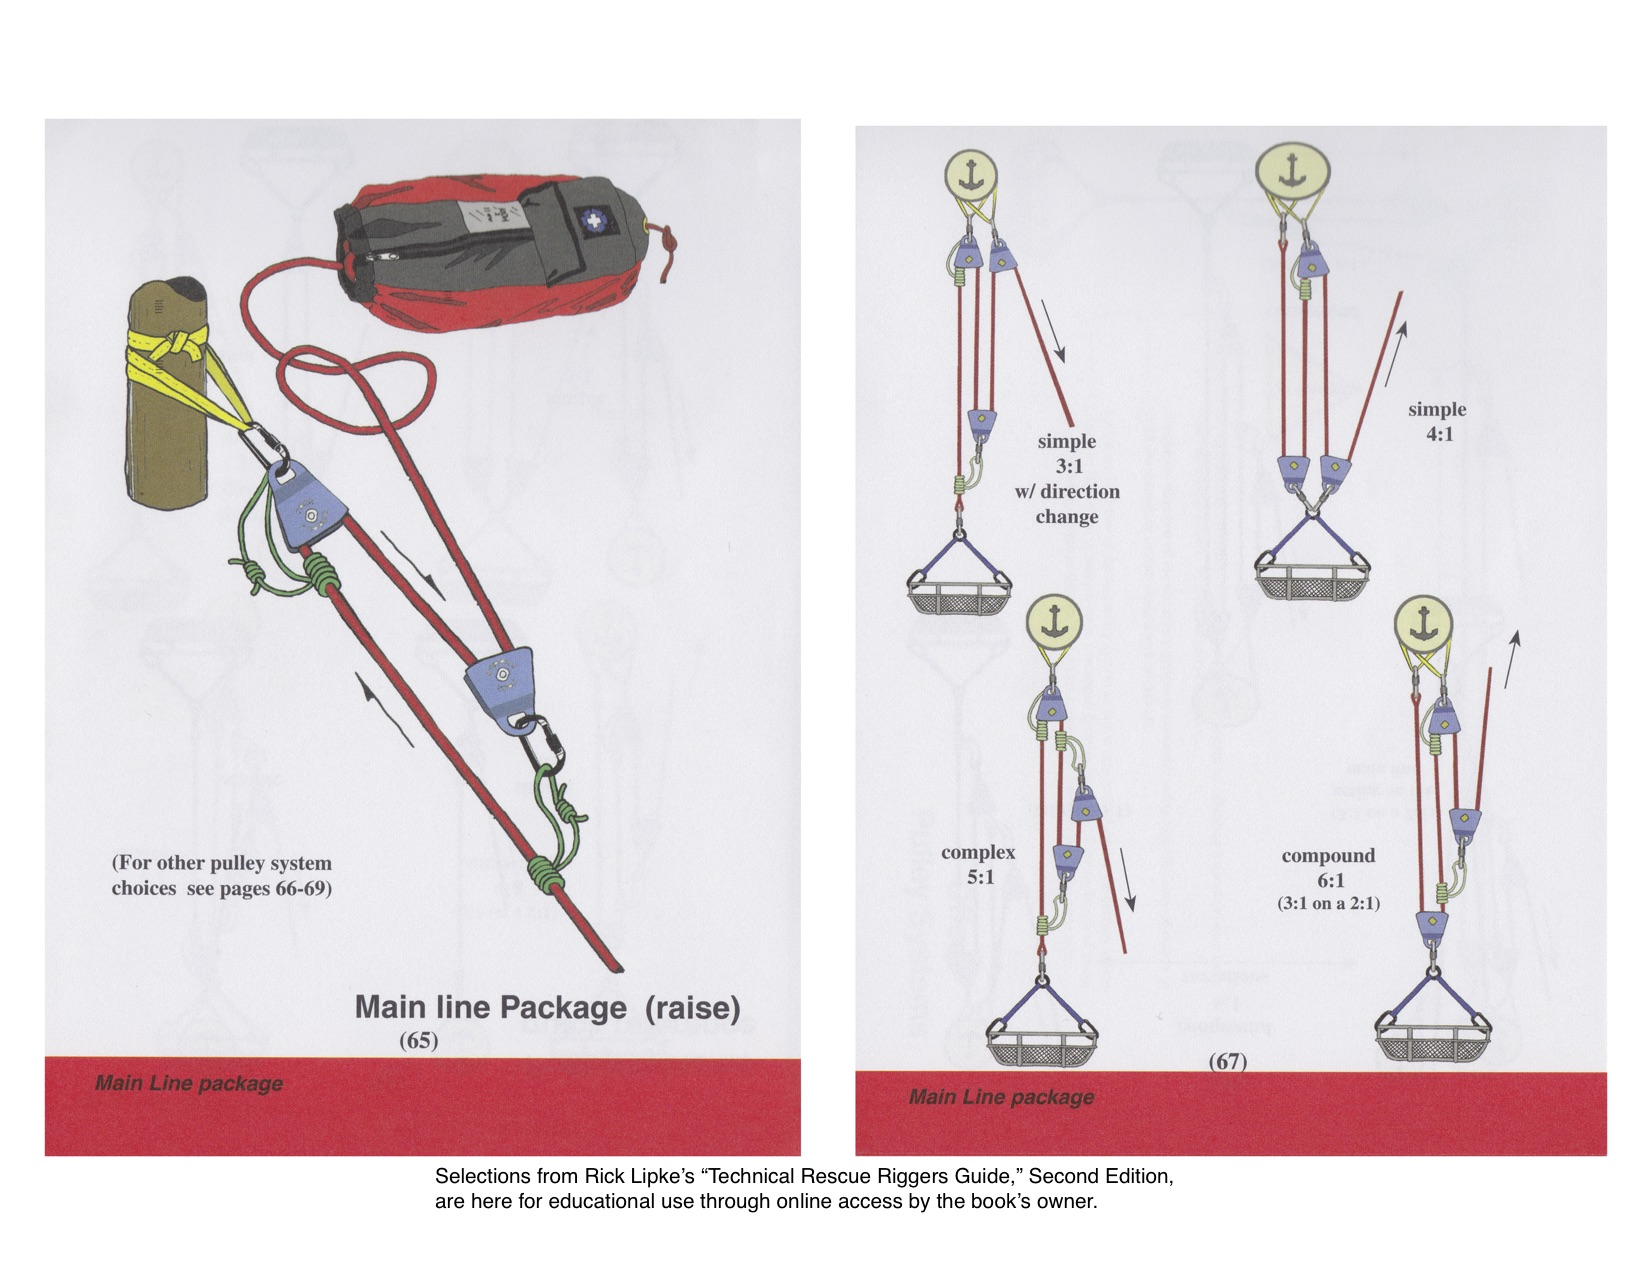 diagram of 3 1 rescue system sears garage door opener wiring knots pdf pictures to pin on pinterest thepinsta